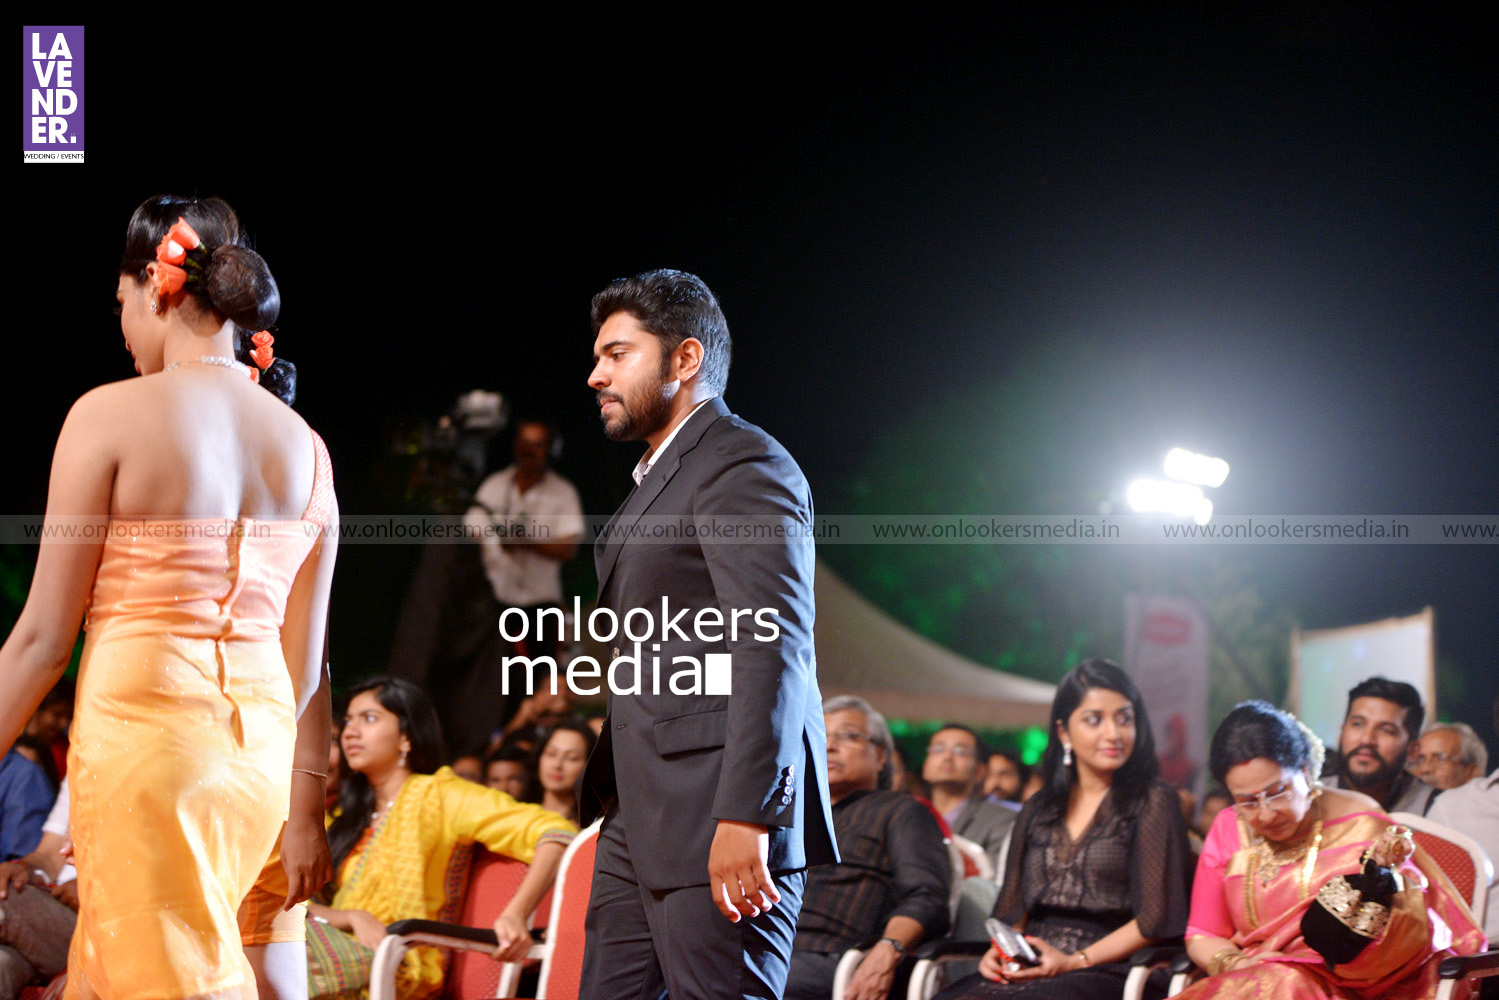 http://onlookersmedia.in/wp-content/uploads/2016/02/Nivin-Pauly-at-Asianet-Film-Award-2016-19.jpg